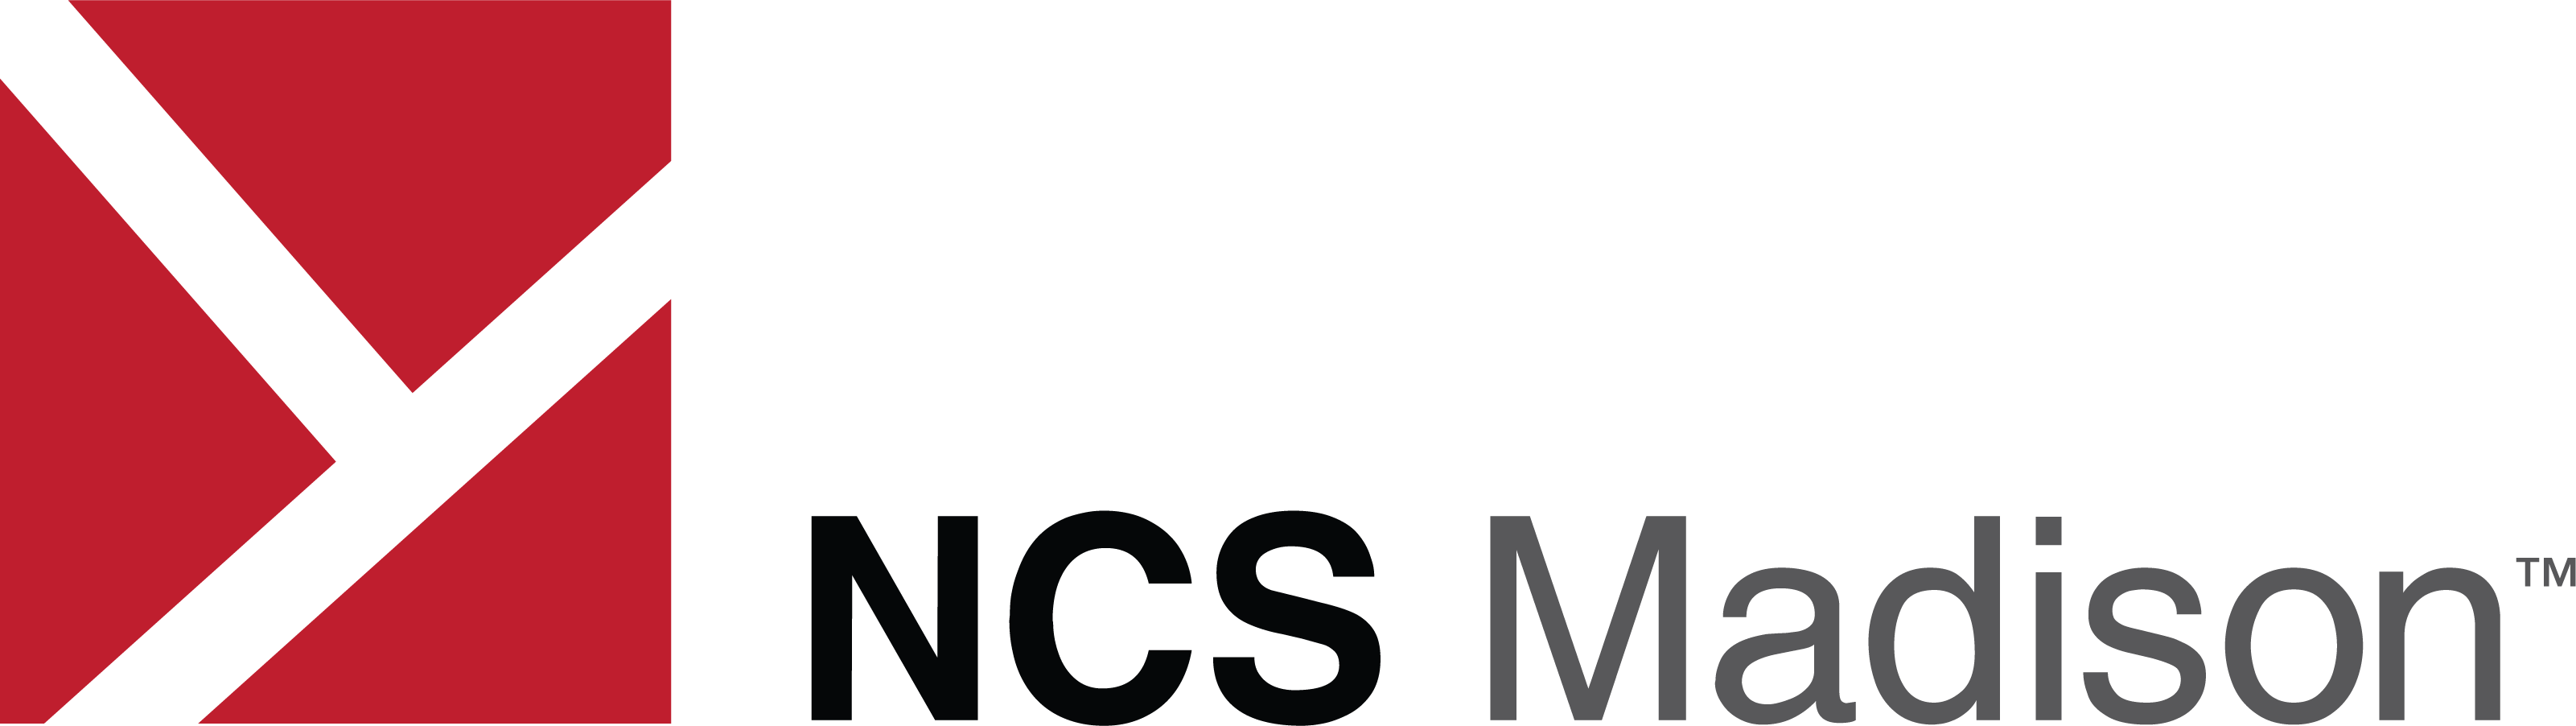 NCS Madison Virtual Events for C-Level sponsored with Sisense